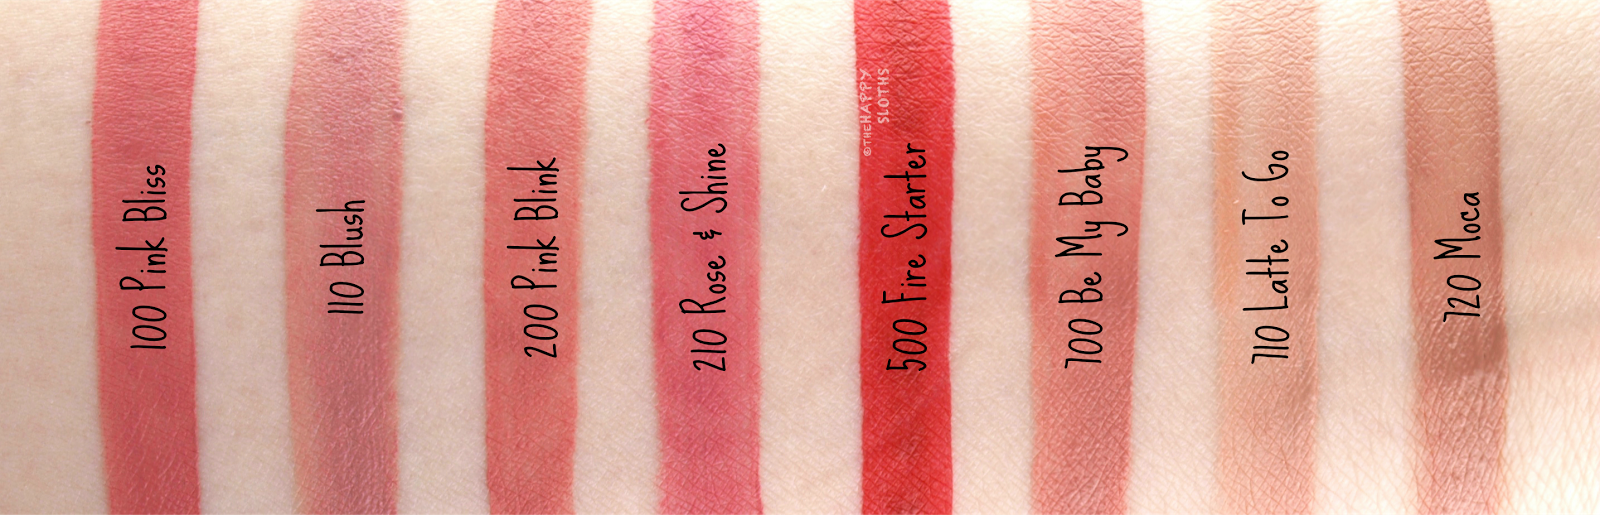 Rimmel London Stay Matte Liquid Lip Colour: Review and Swatches